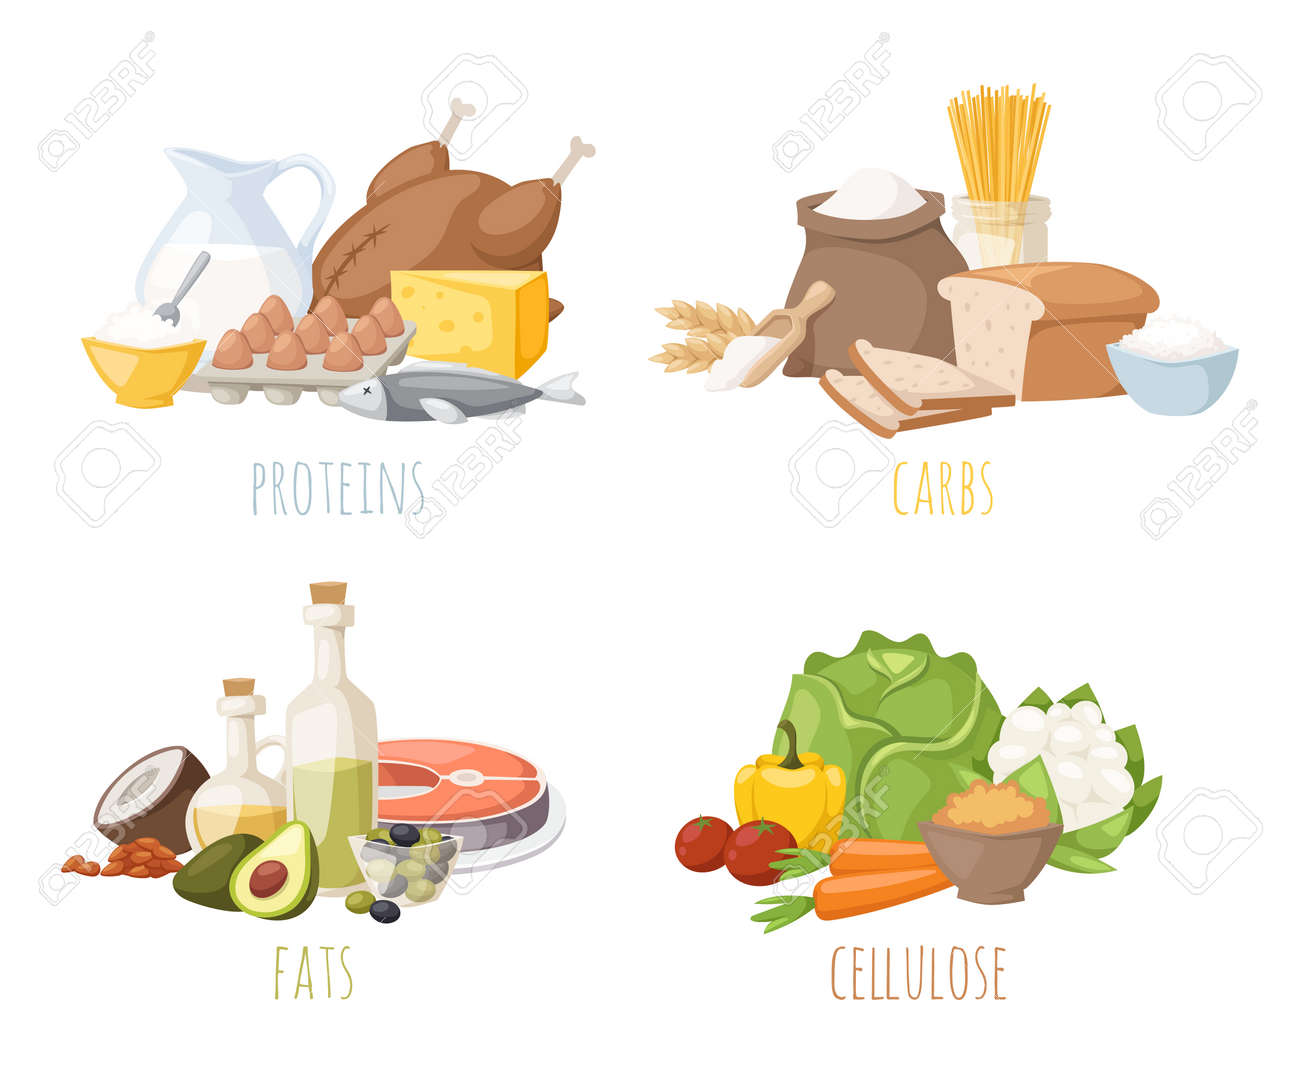 Healthy nutrition, proteins fats carbohydrates balanced diet, cooking, culinary and food concept vector. Healthy nutrition proteins fats carbohydrates vegetables fruits, meat and healthy nutrition. - 54707453